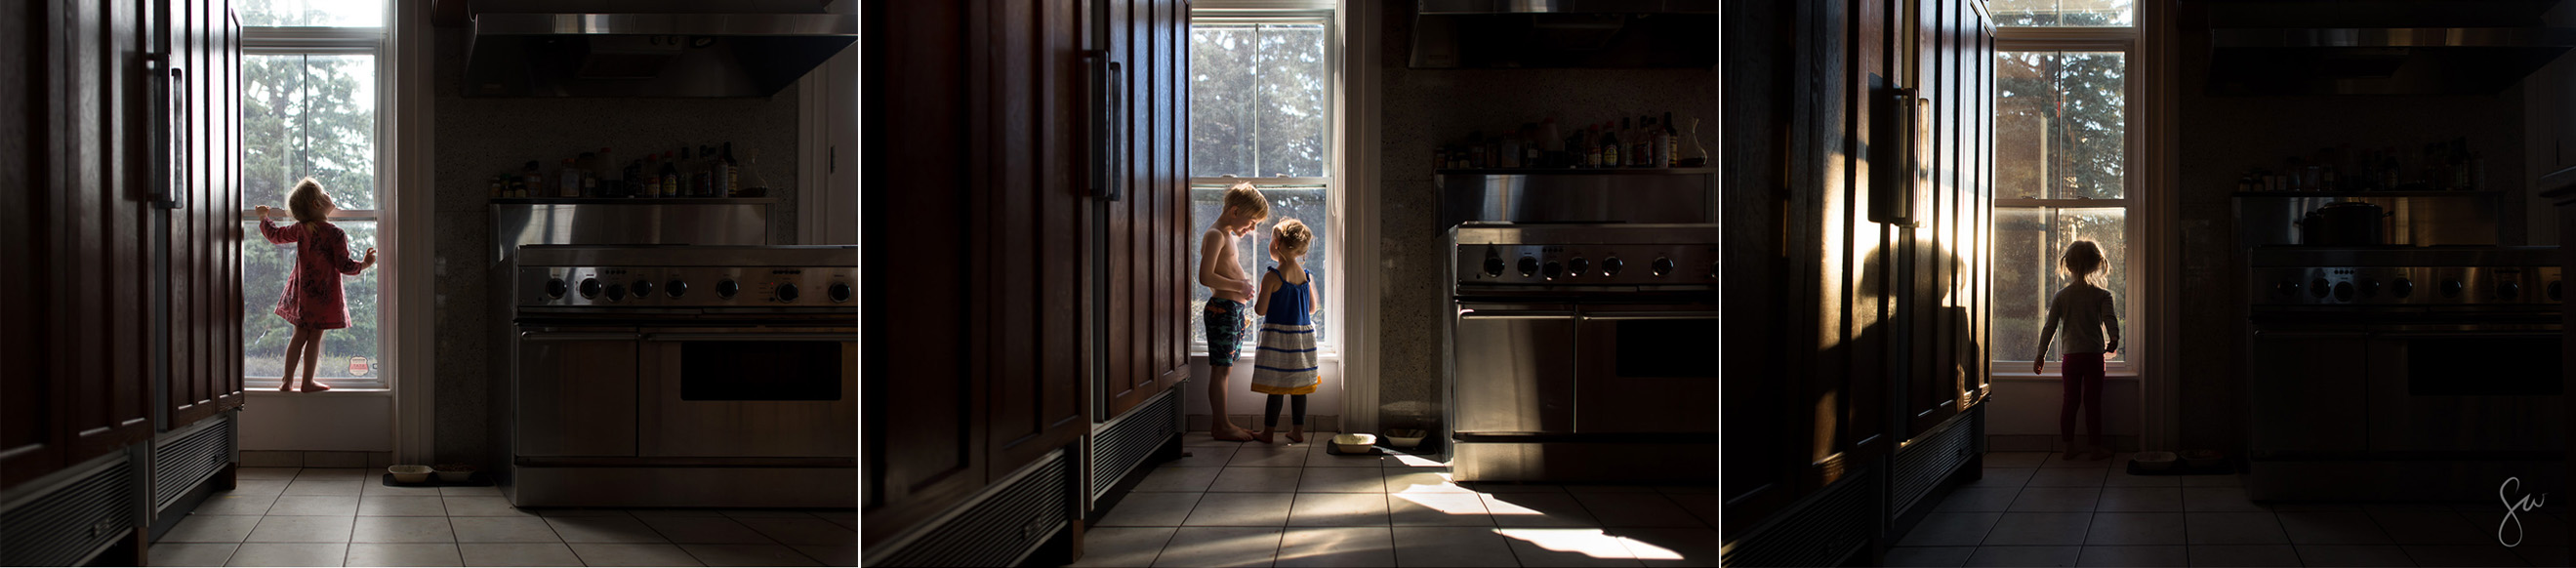 Photography-Series-of-Daily-Life-in-Front-of-Kitchen-Window-by-Photographer-Sarah-Wilkerson